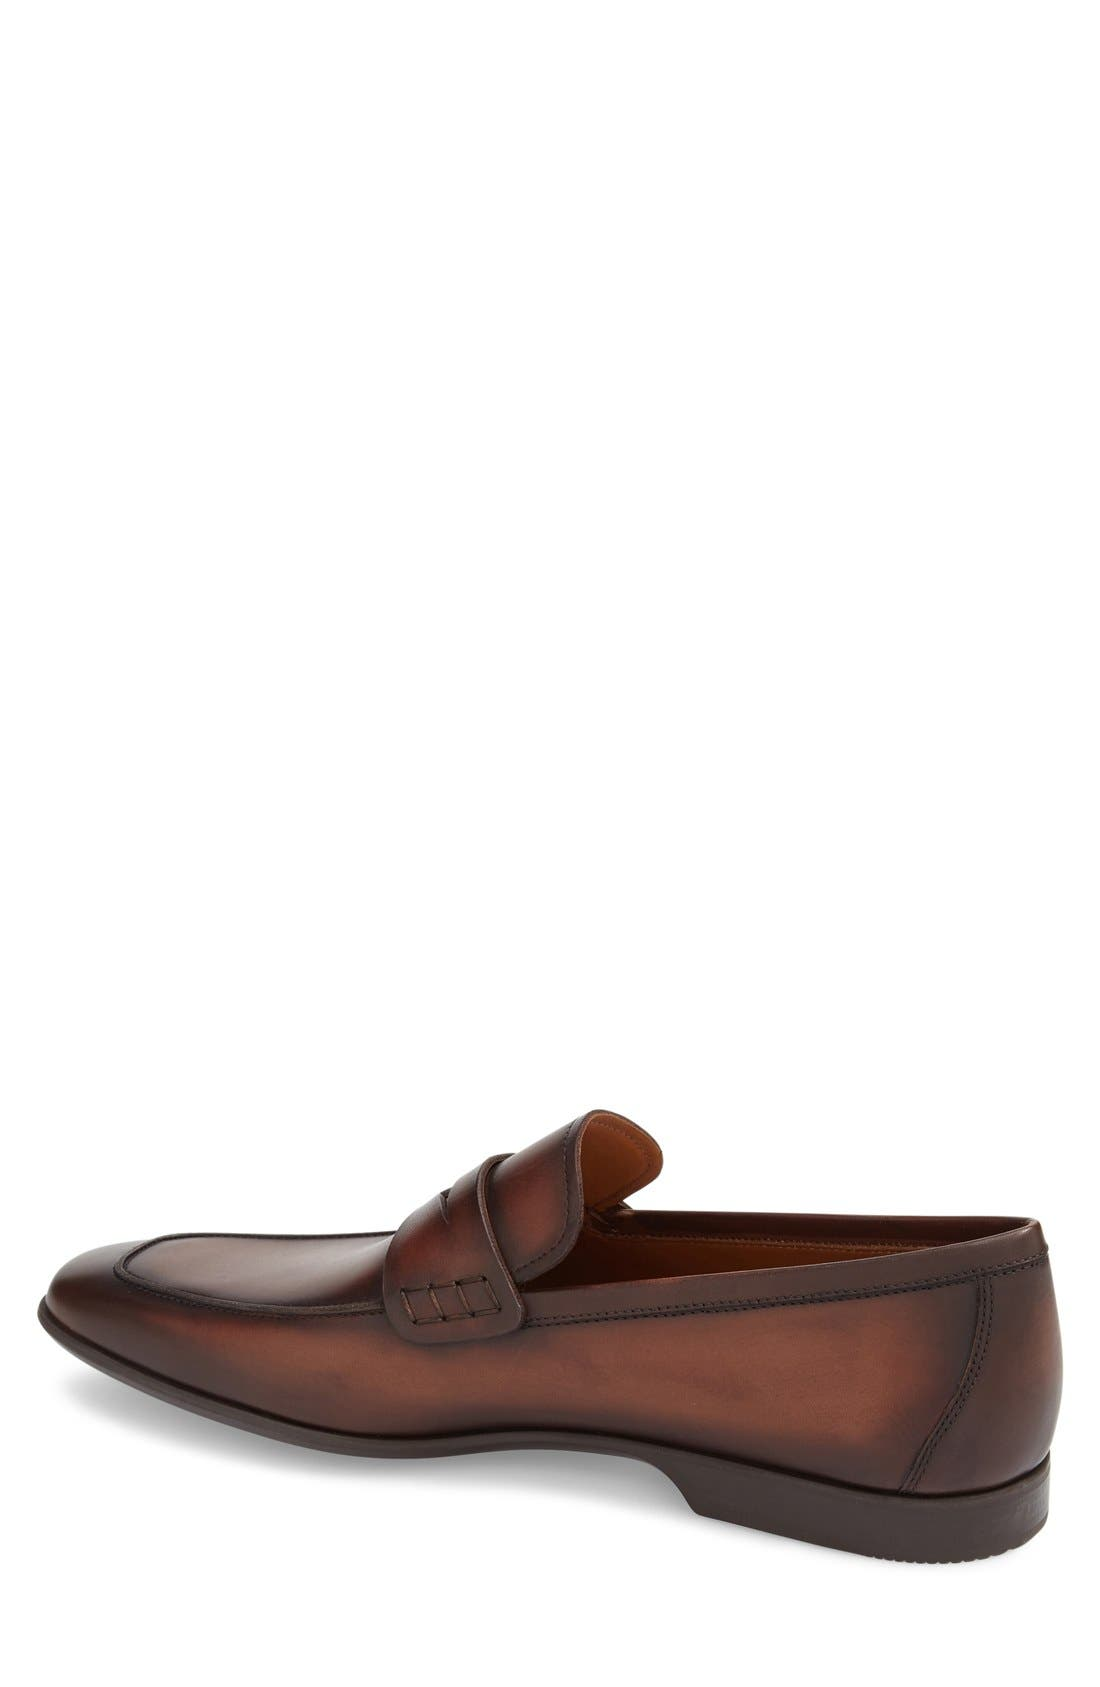 Alternate Image 2  - Magnanni 'Ramiro II' Penny Loafer (Men)